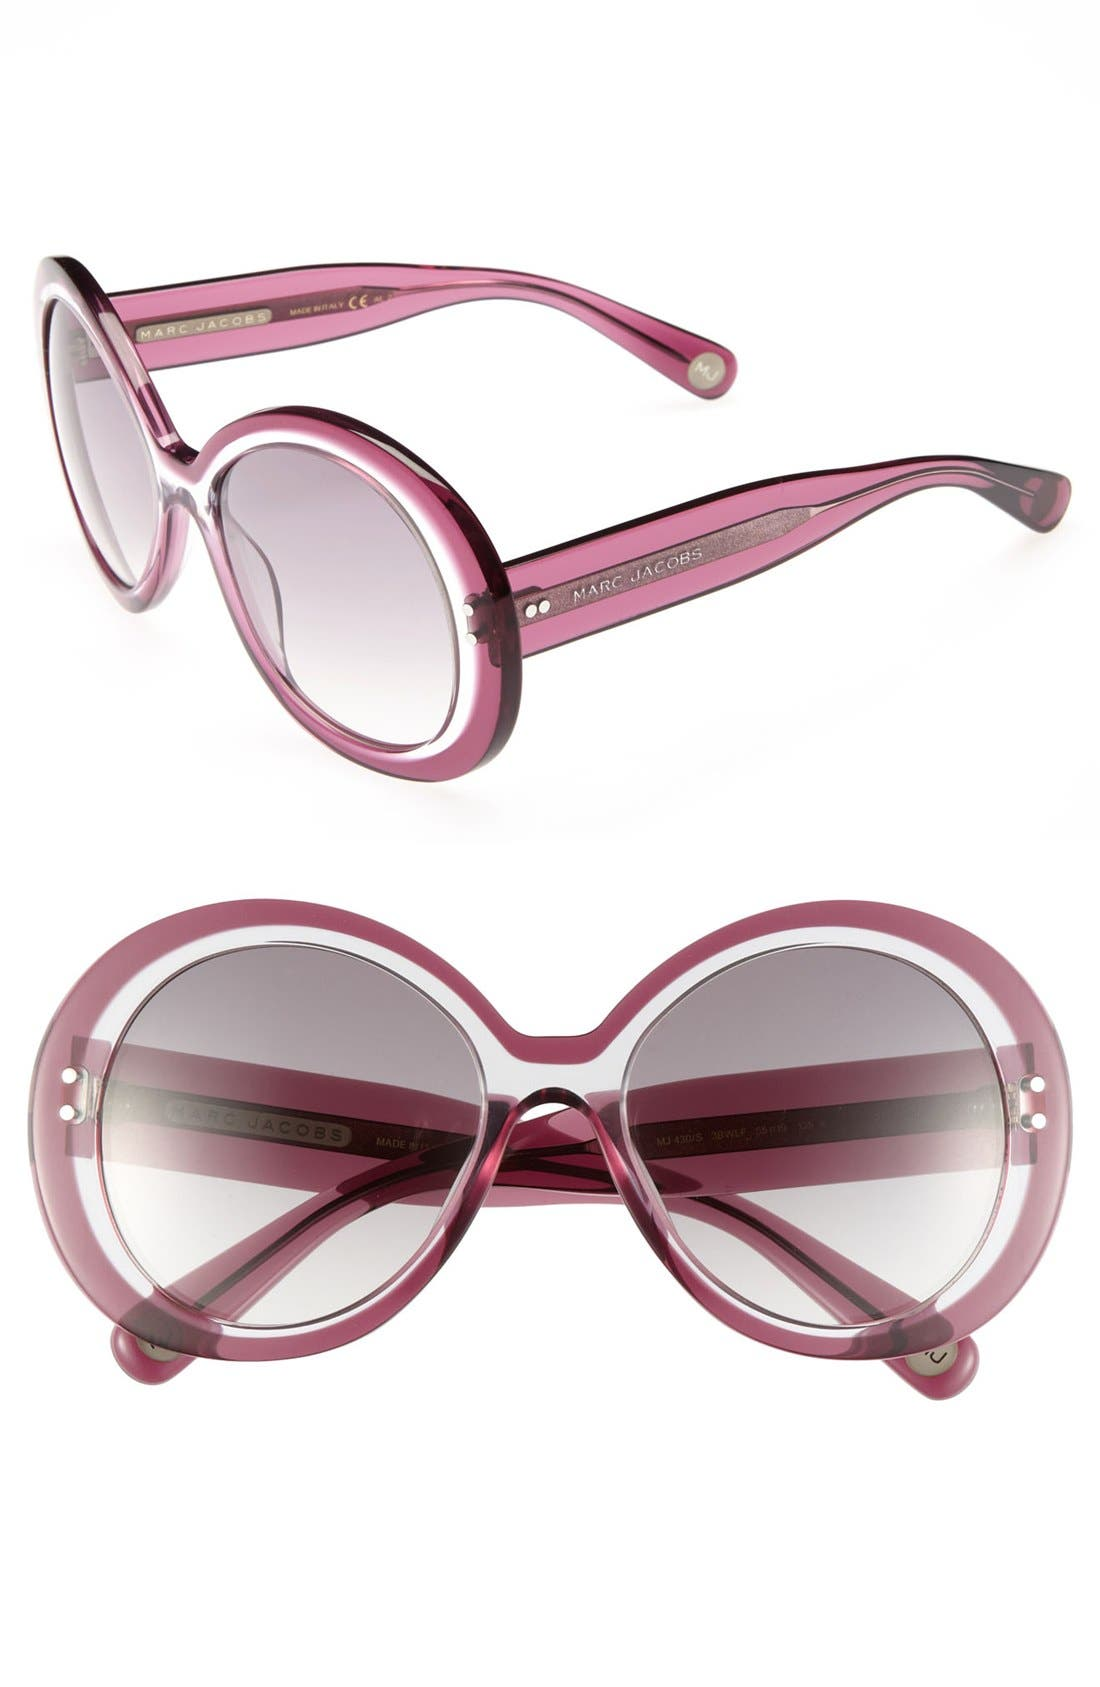 Alternate Image 1 Selected - MARC JACOBS 55mm Oversized Sunglasses